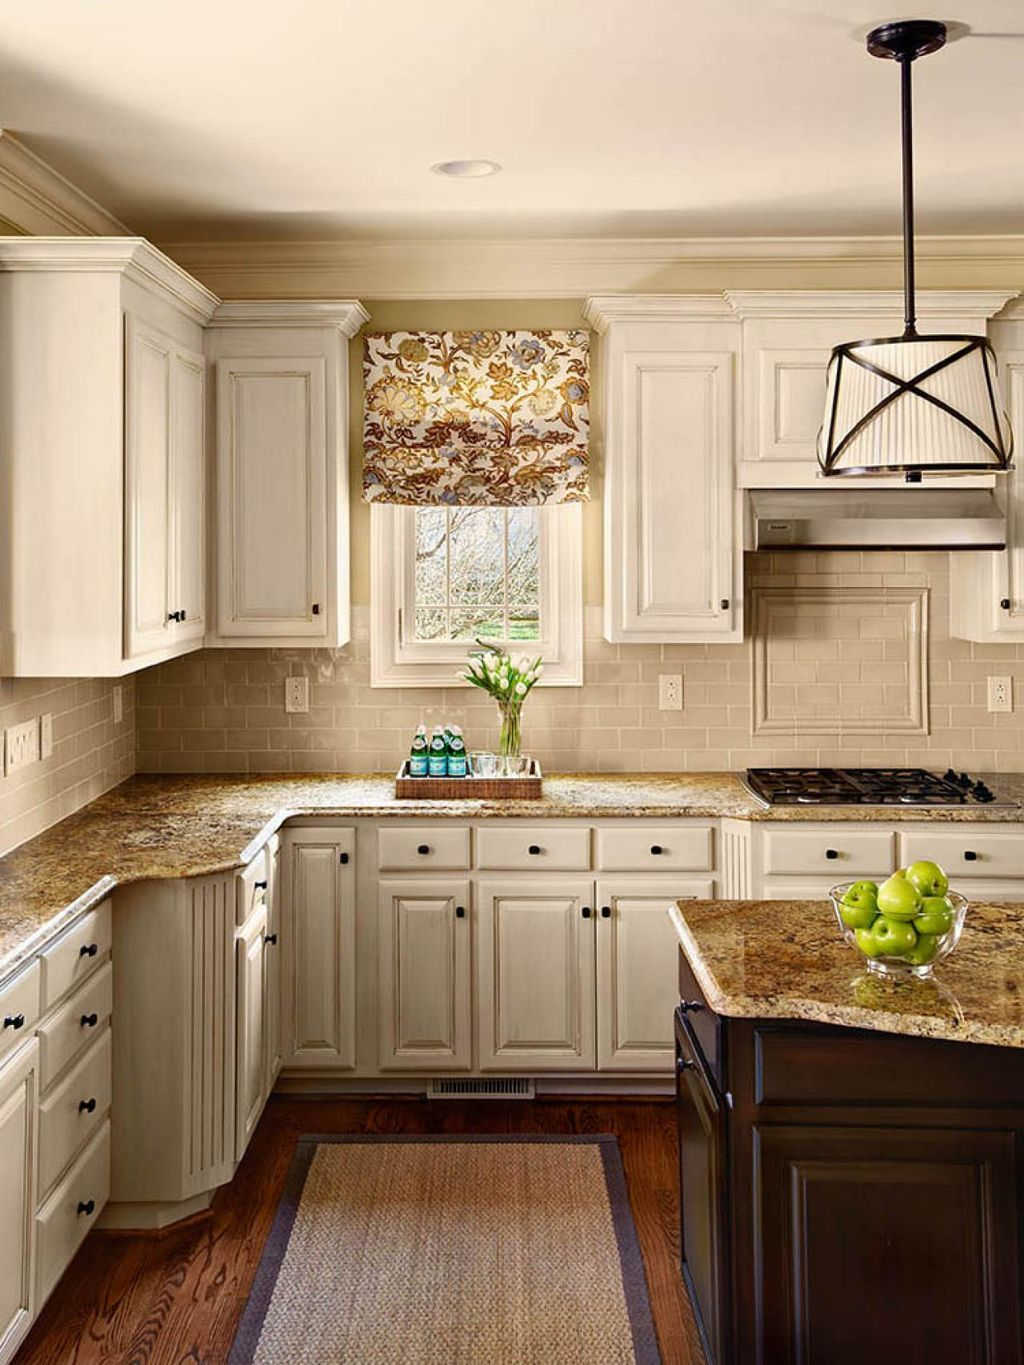 50 Inspiring Cream Colored Kitchen Cabinets Decor Ideas | Cream ...